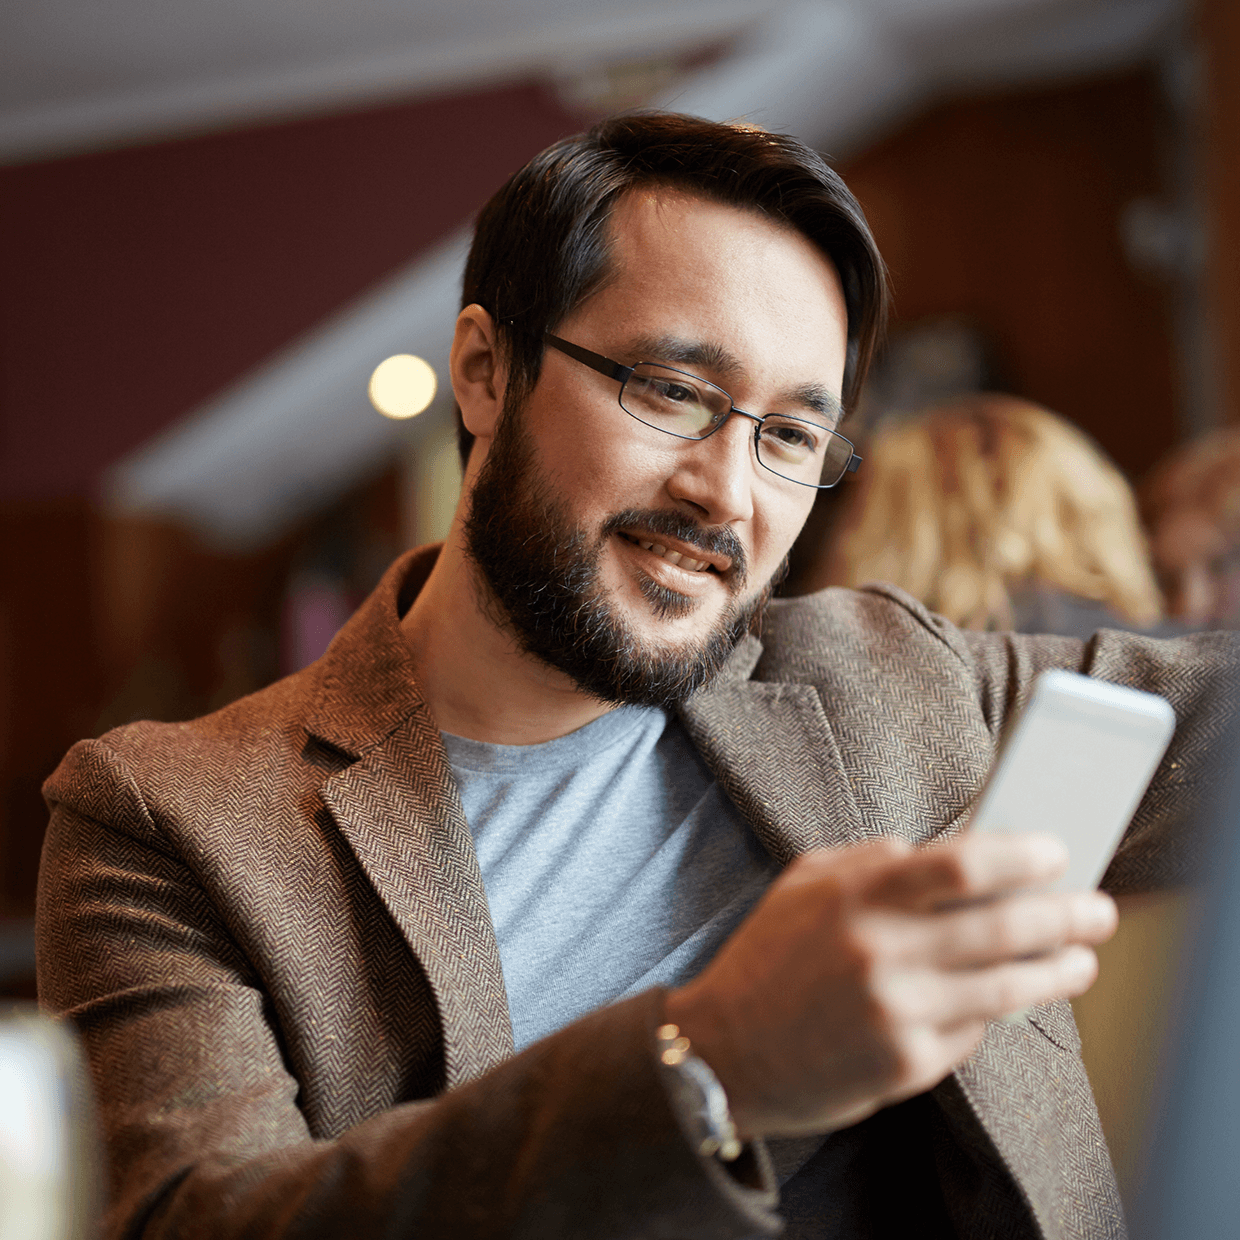 Man looking at his accounts on a cell phone.